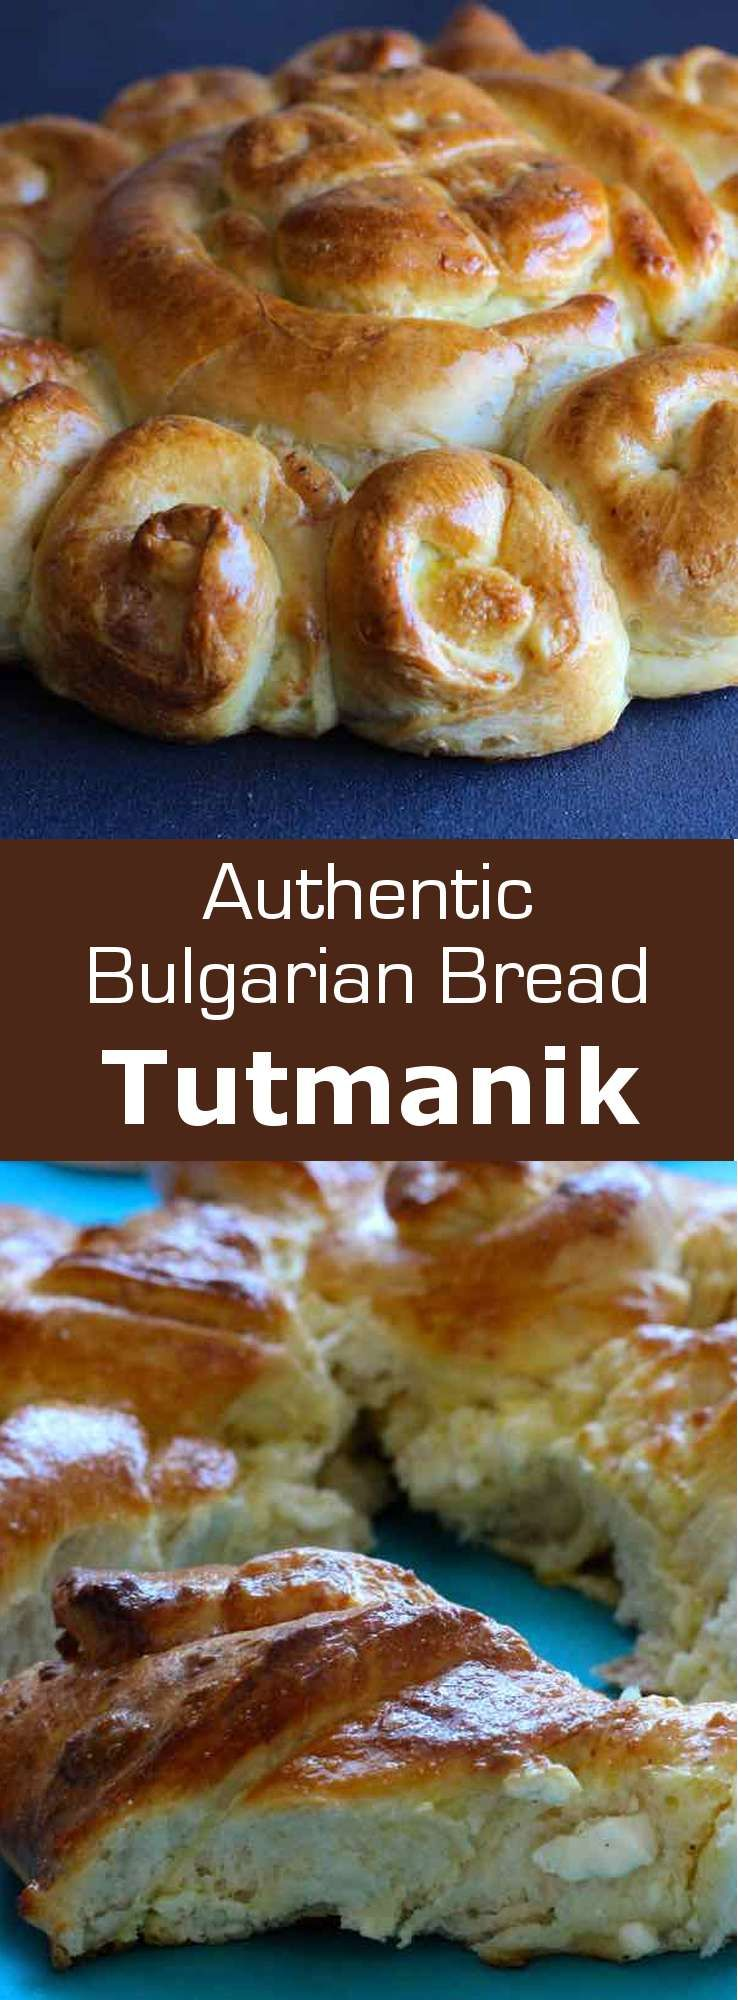 Mesenitza Or Tutmanik Is One Of The Most Famous Bulgarian